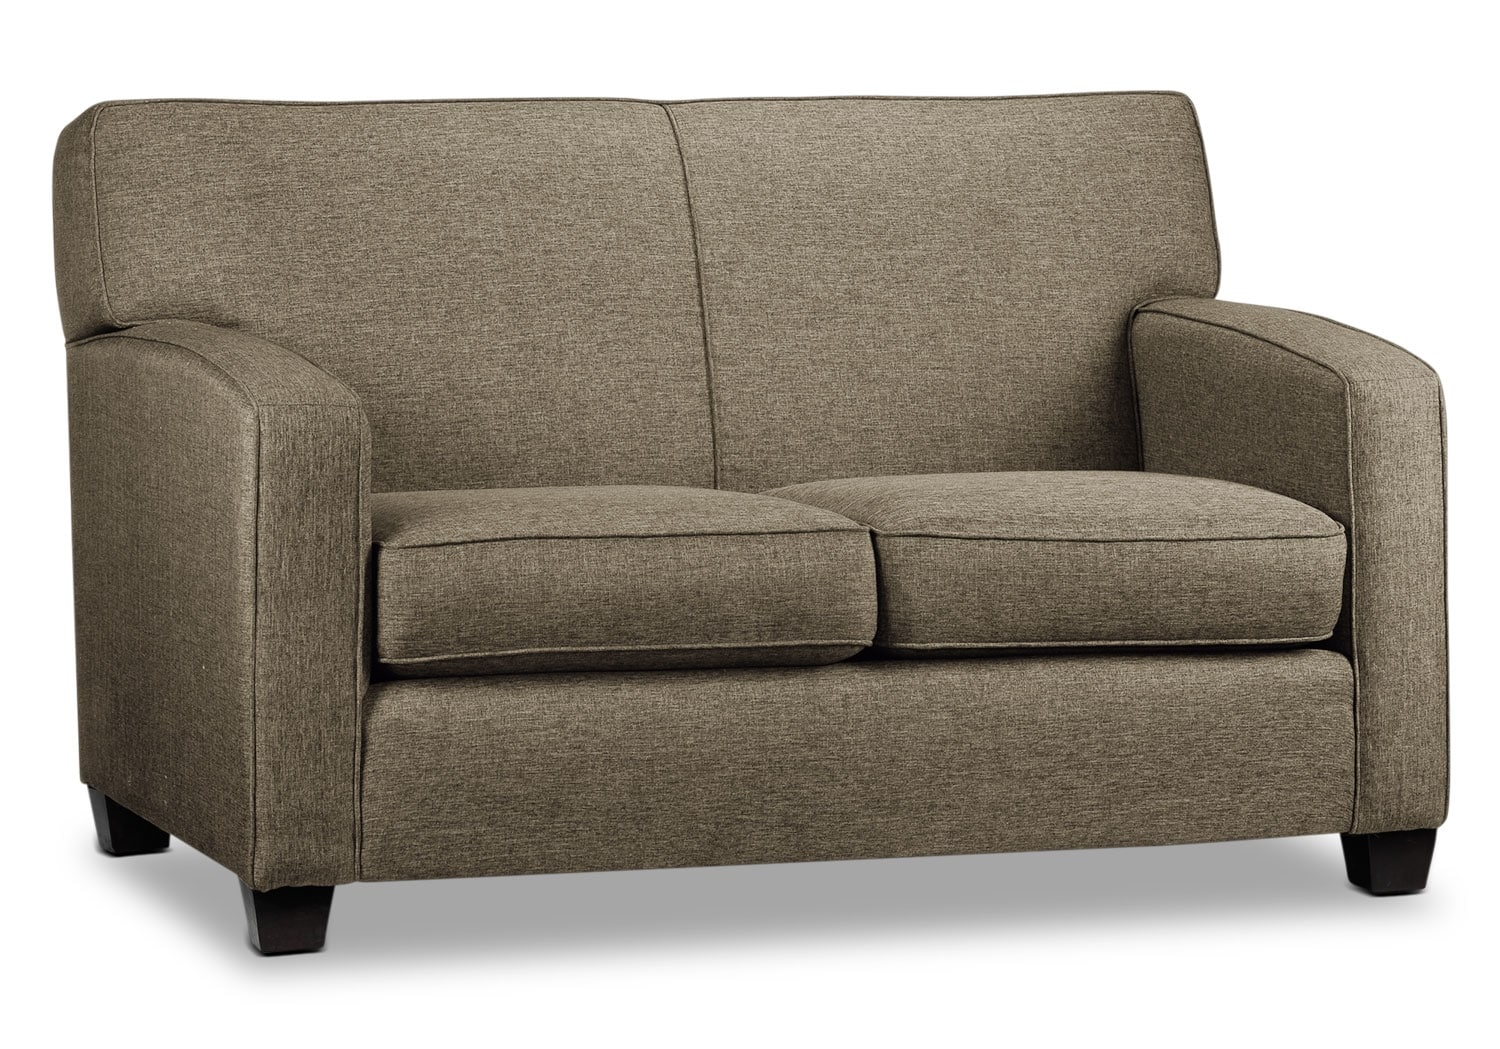 Living Room Furniture - Falcon Loveseat - Beige